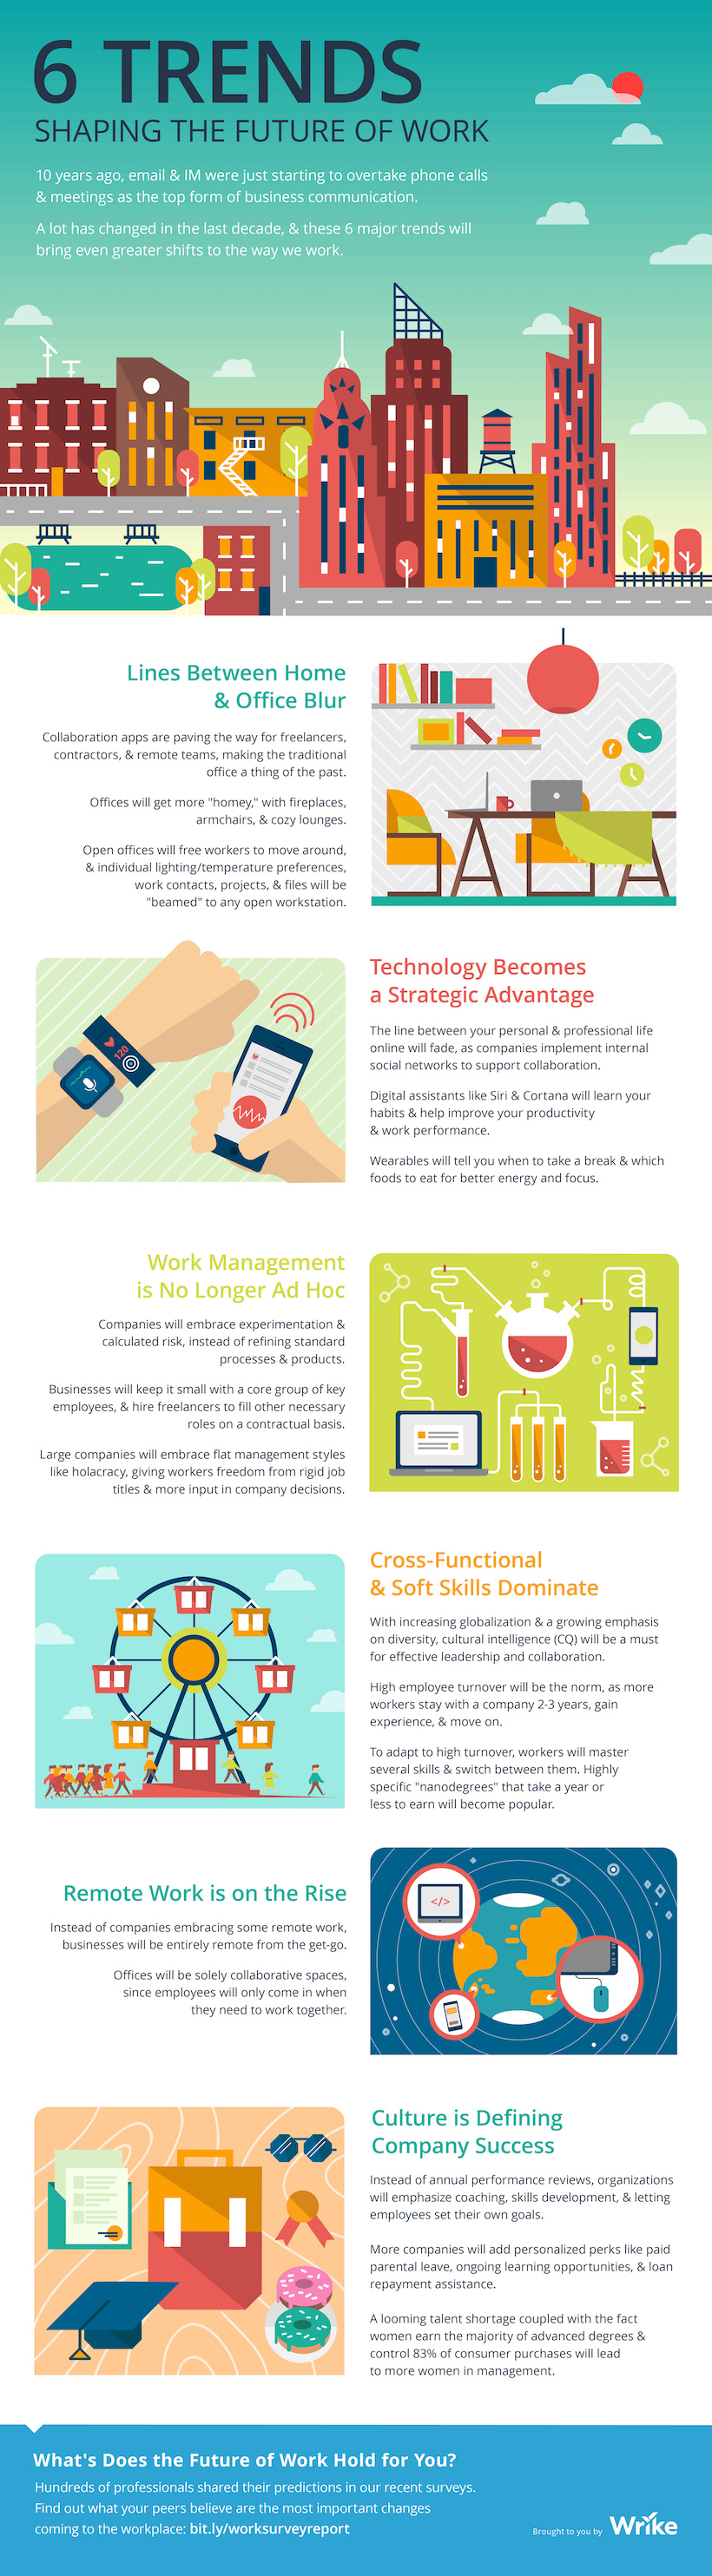 6 Trends Shaping the Future of Work (Infographic)